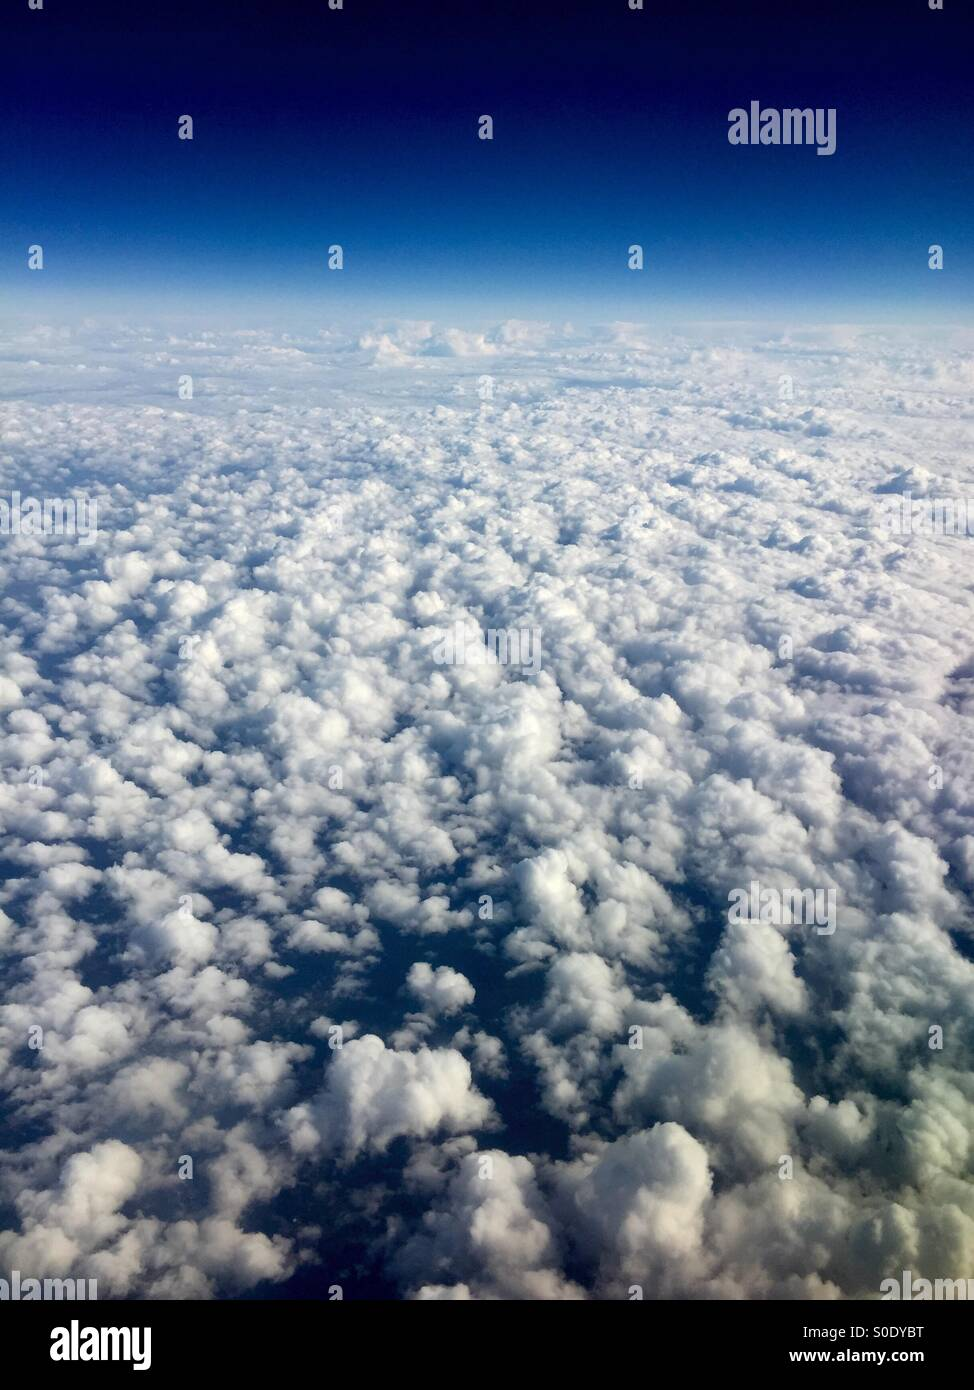 Candy floss clouds - Stock Image